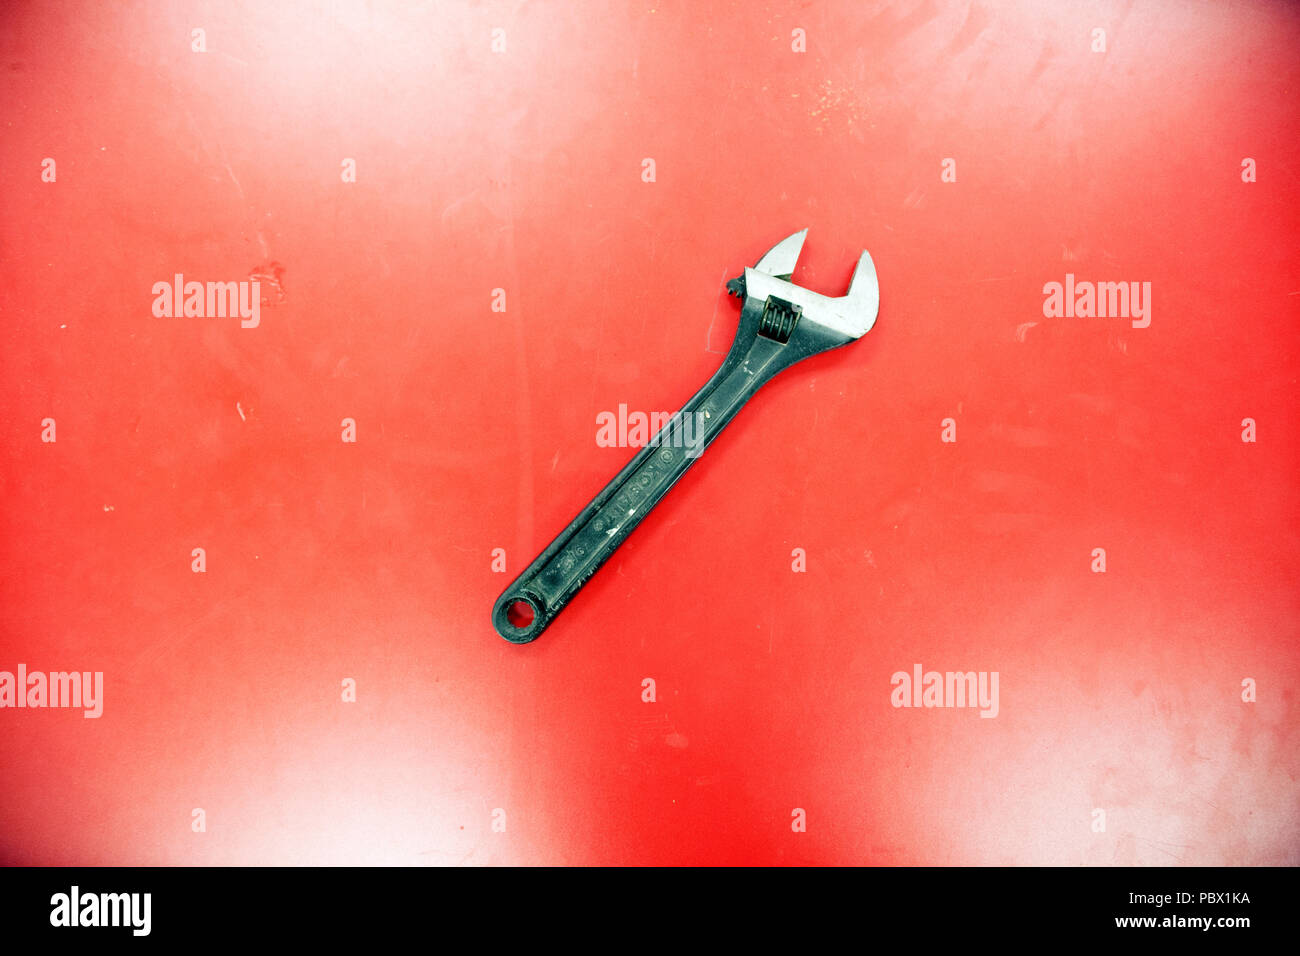 Still life of a crescent wrench alone on the red background - Stock Image